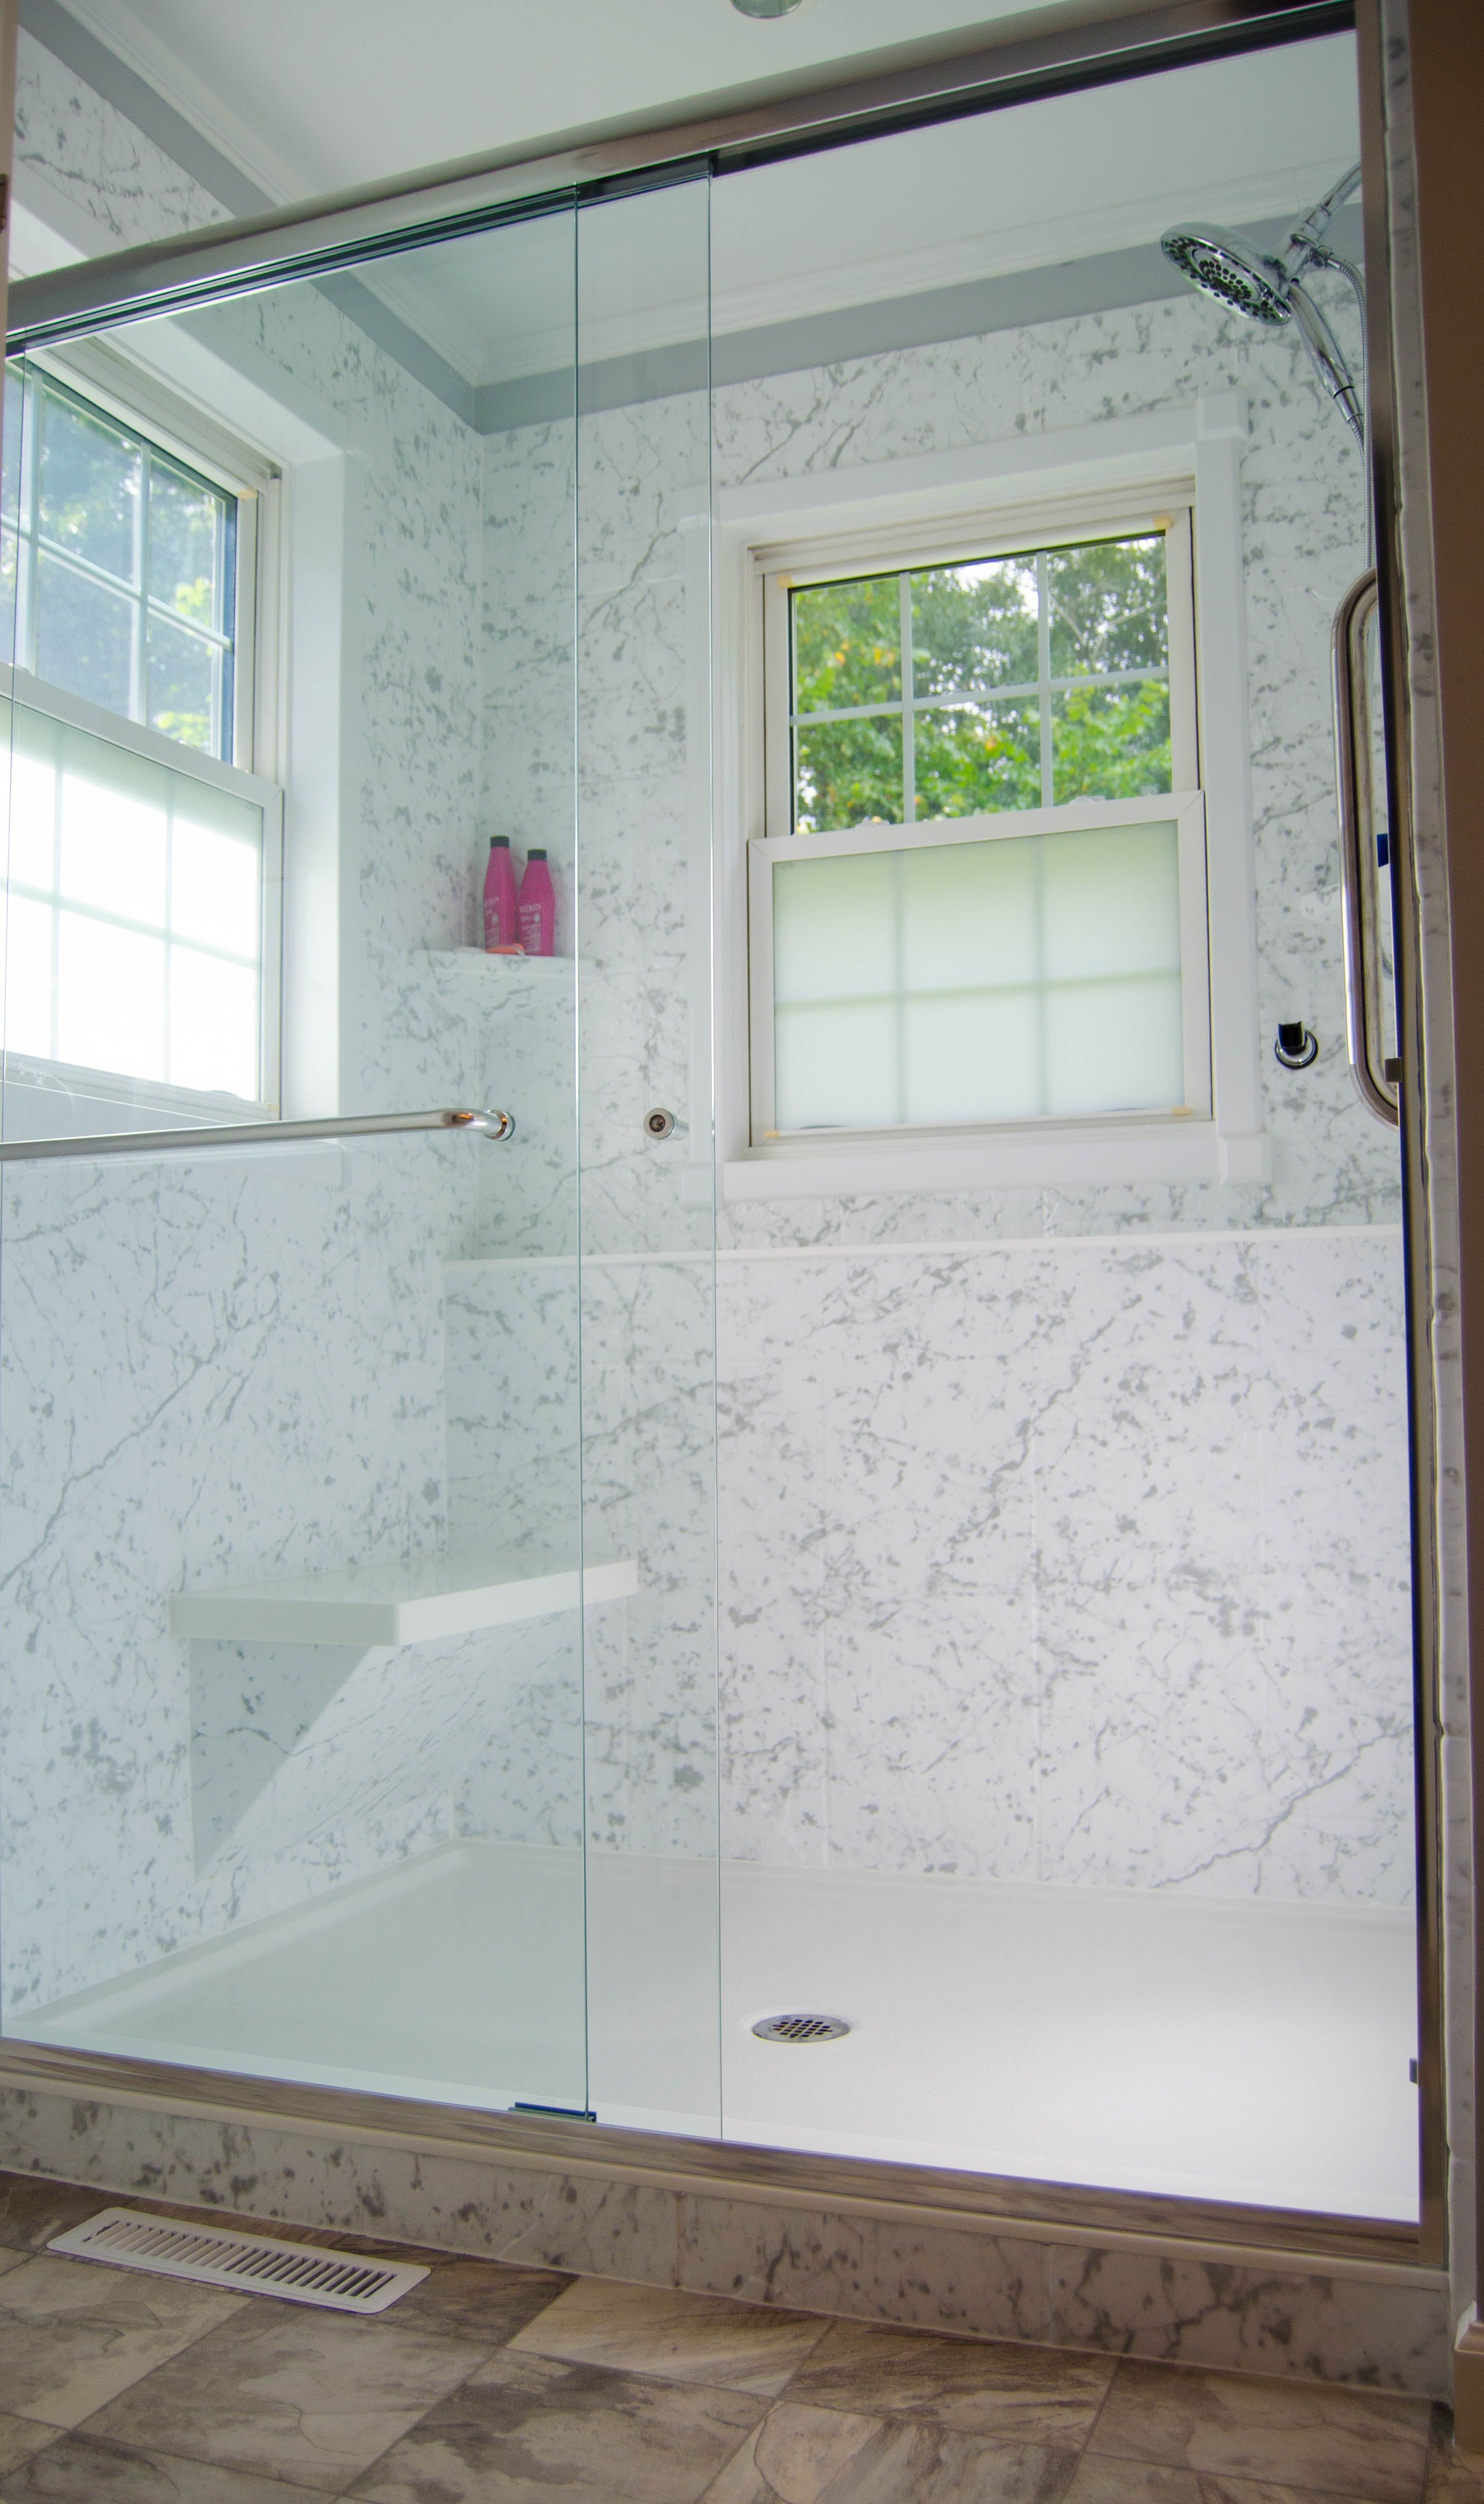 Check Out This Faux Marble Walk In Shower  With Grab Bar, Shower Seat,